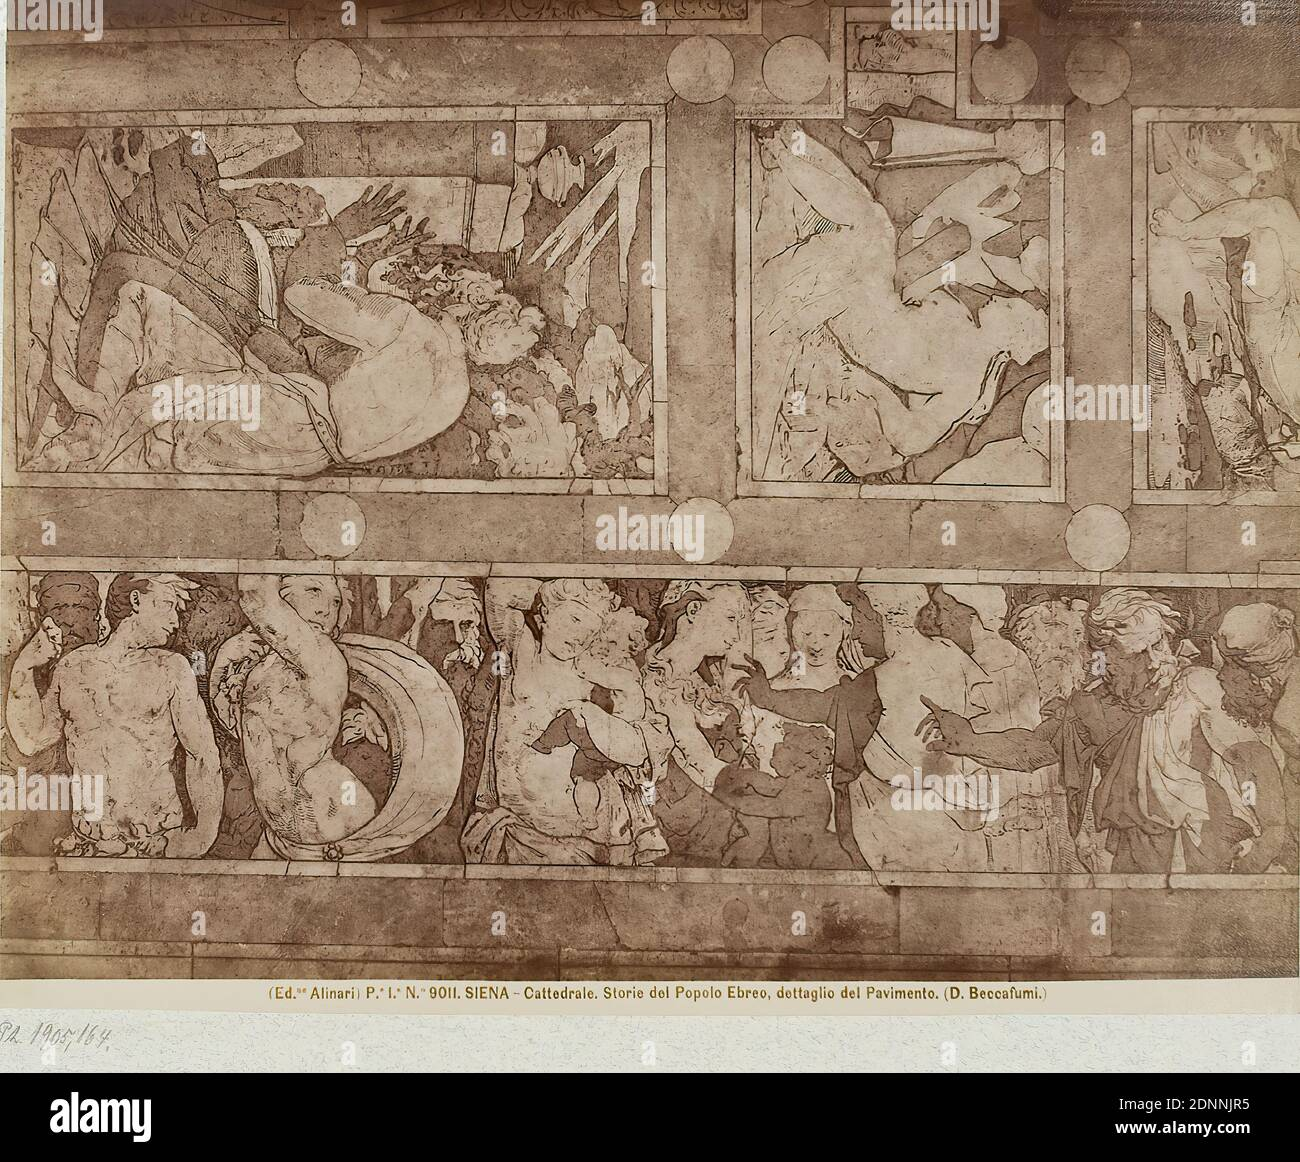 Domenico Beccafumi: Stories of the People of Israel, detail of the floor in the cathedral of Siena, albumin paper, black and white positive process, image size: height: 19.3 cm; width: 24.9 cm, SIENA - Cattedrale. Storie del Popolo Ebreo, dettaglio del Pavimento. (D. Beccafumi.), Old Testament, floor (architecture), art Stock Photo